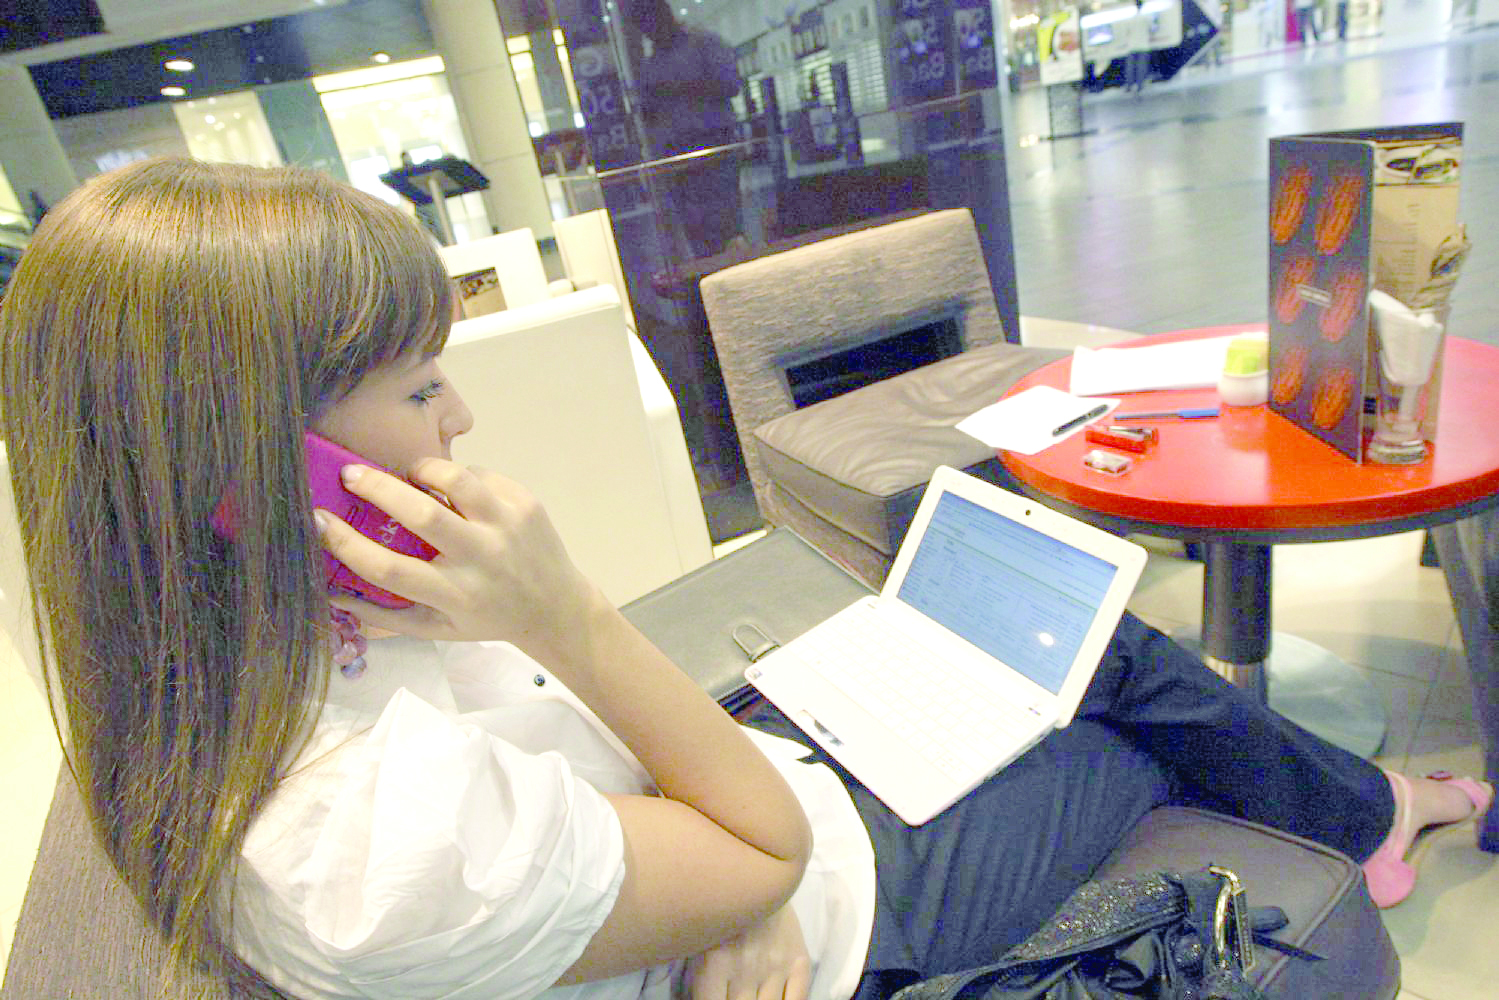 A young Arab woman looks at her laptop while making a phone call at a shopping mall in Dubai. (Reuters)